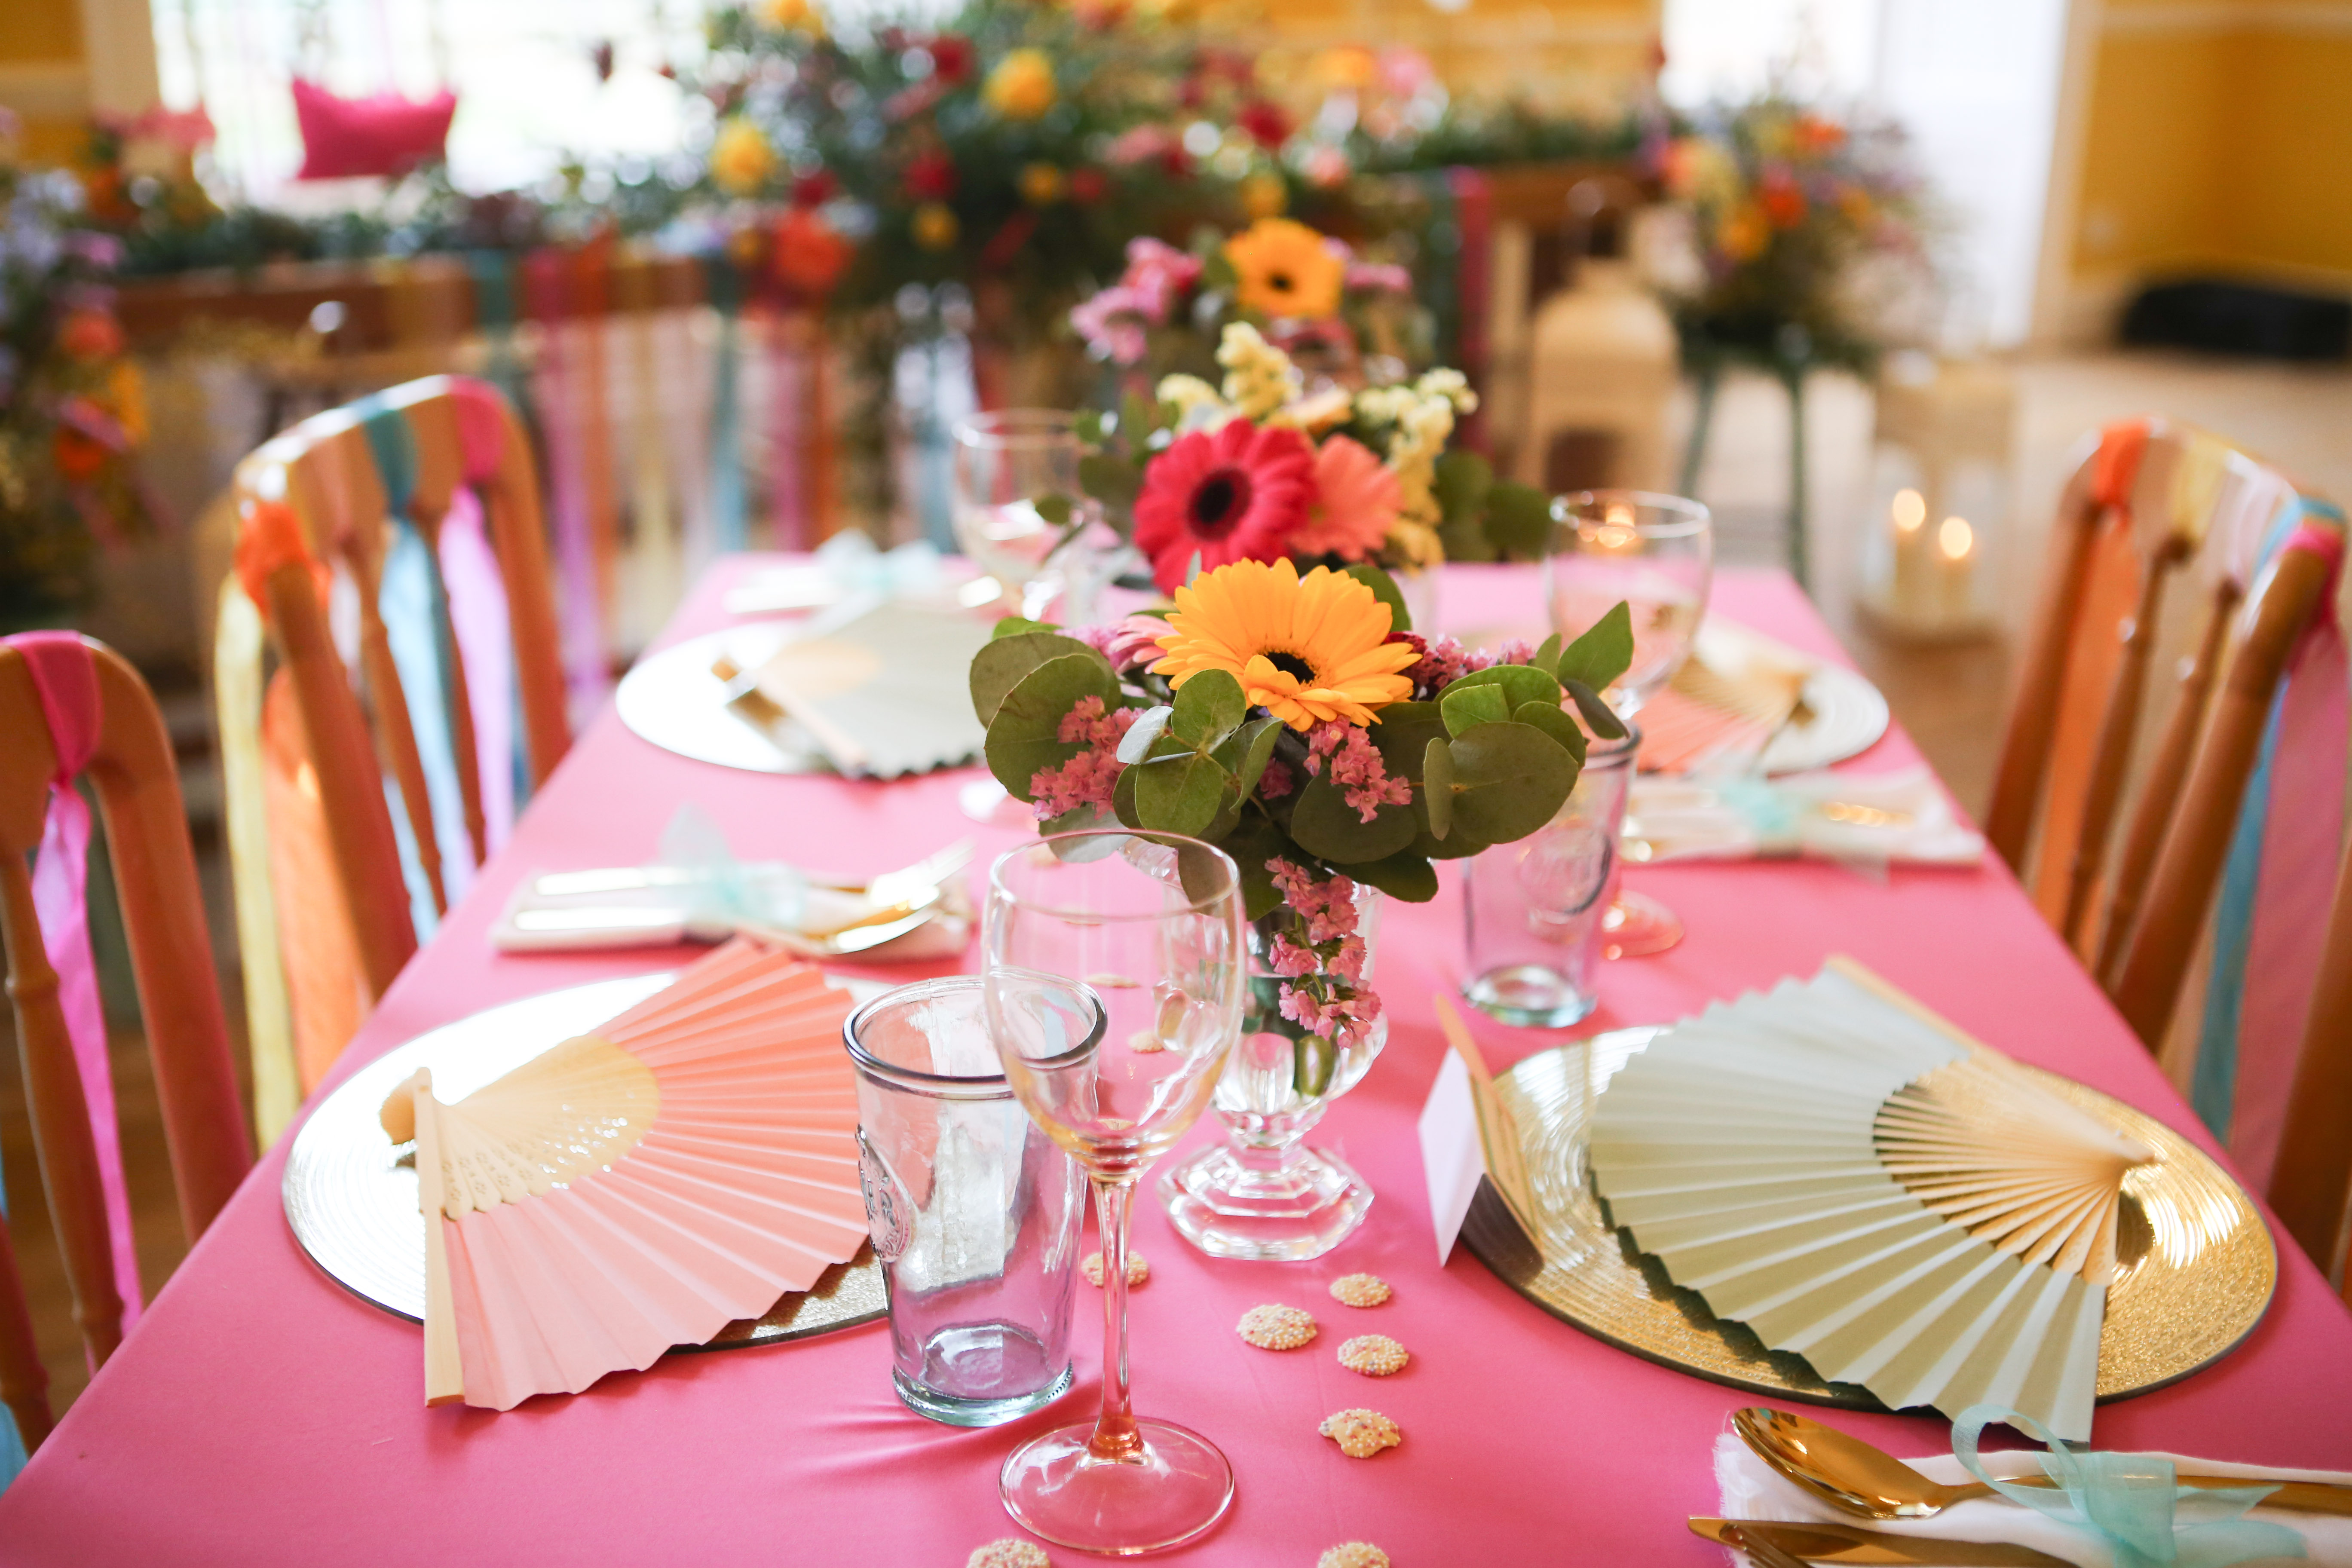 Colourful tablecloths and fans